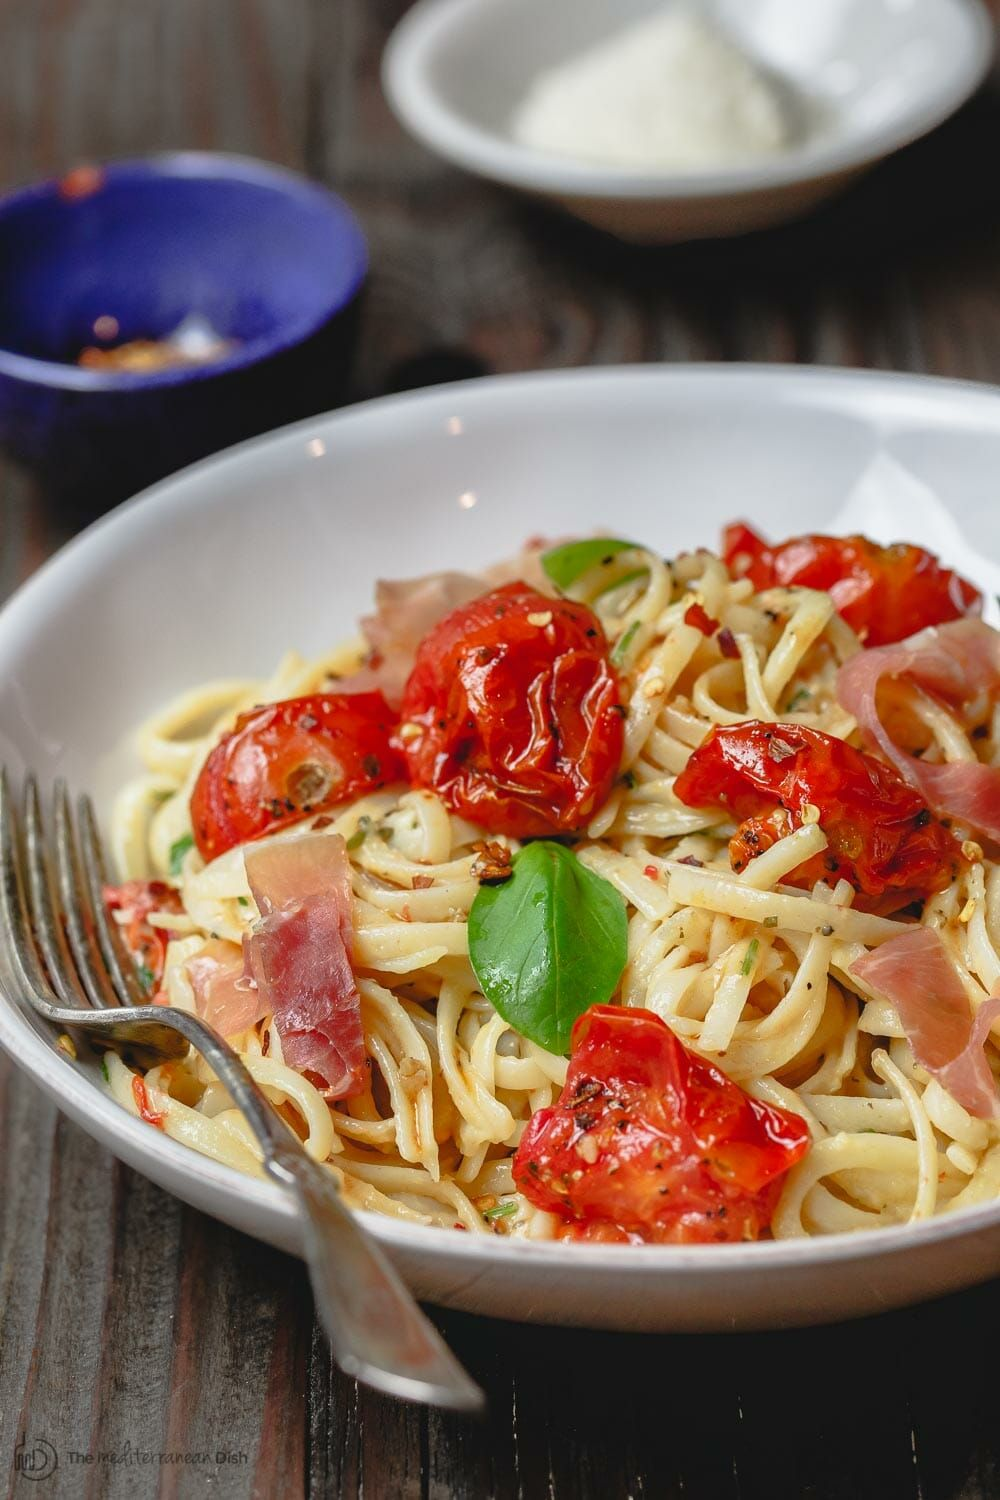 Carbonara Recipe With Roasted Tomatoes The Mediterranean Dish A Lighter And Flavor Packed Cabornara Reci Easy Carbonara Recipe Carbonara Recipe Fresh Pasta